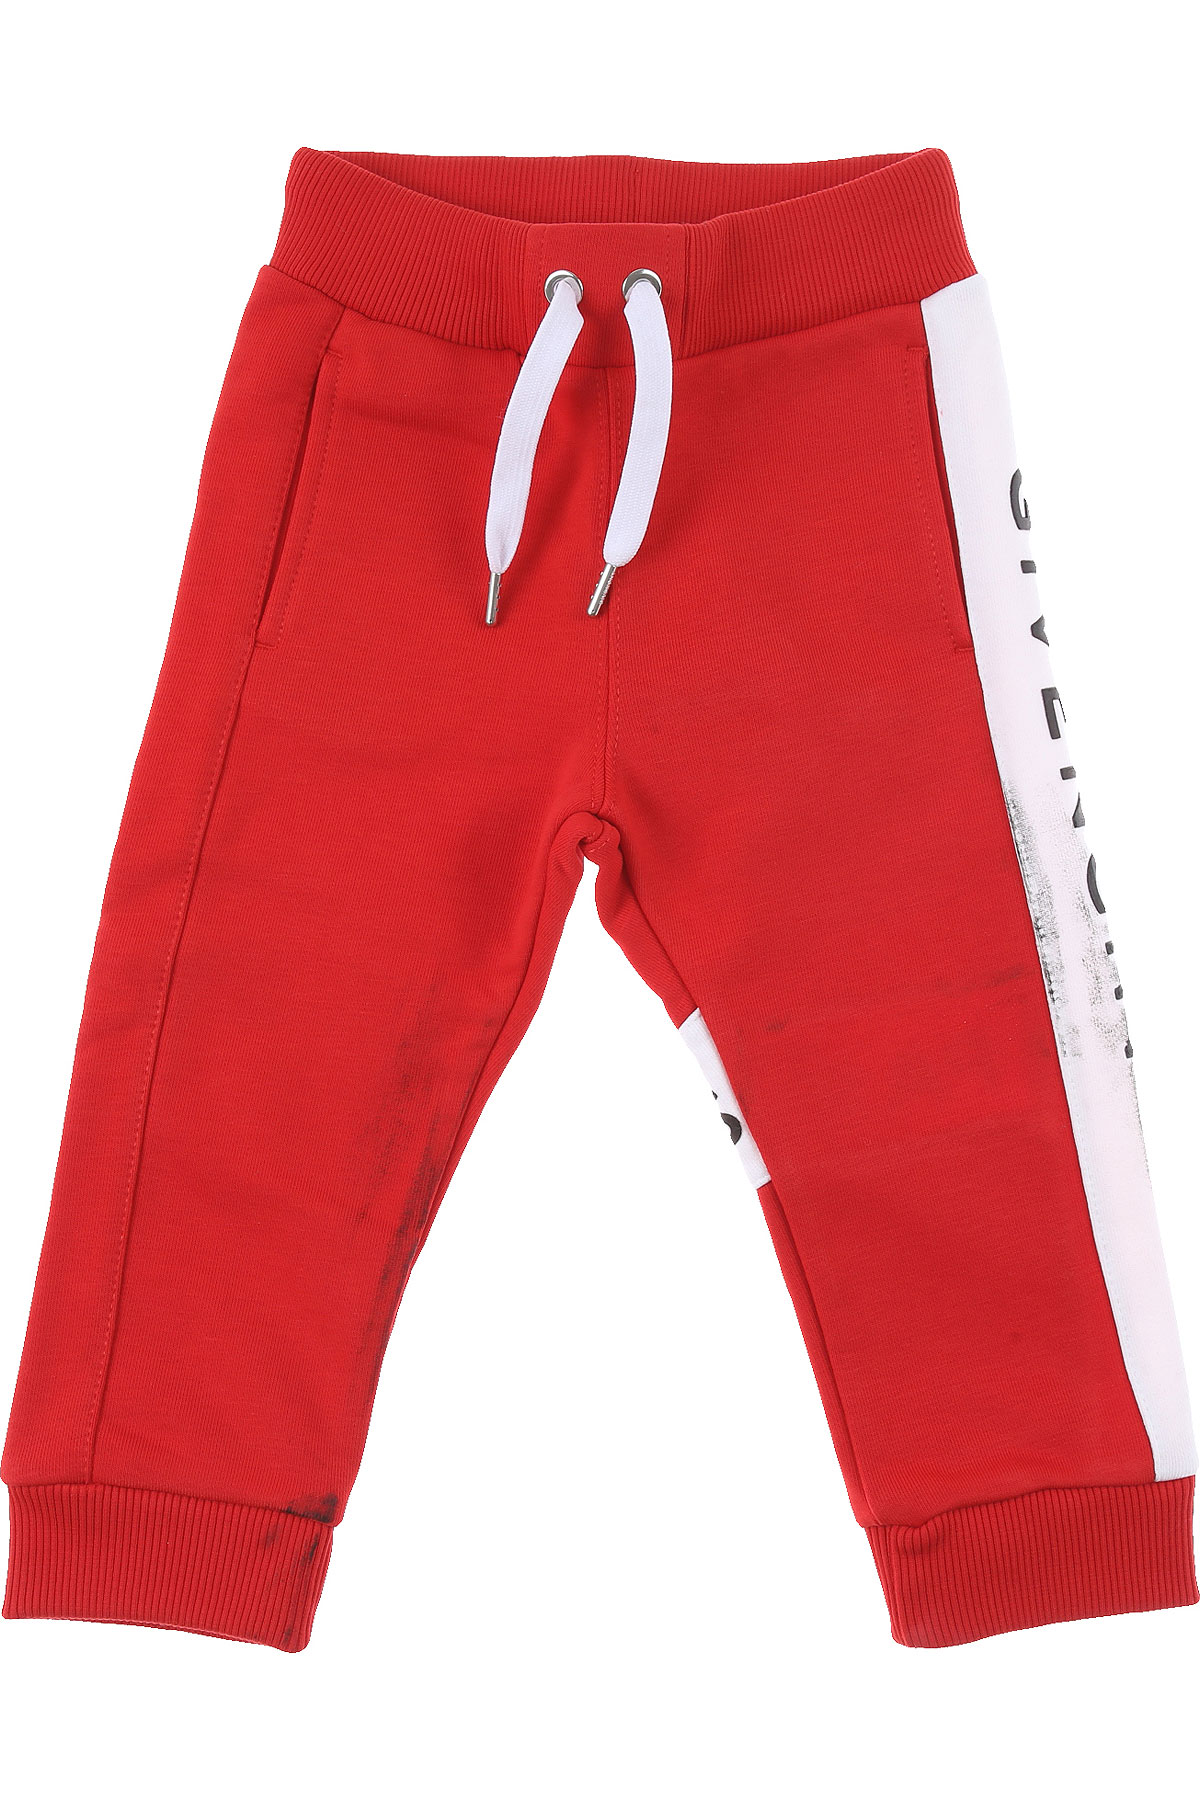 Givenchy Baby Sweatpants for Boys On Sale, Red, Cotton, 2019, 12 M 18 M 2Y 3Y 9 M